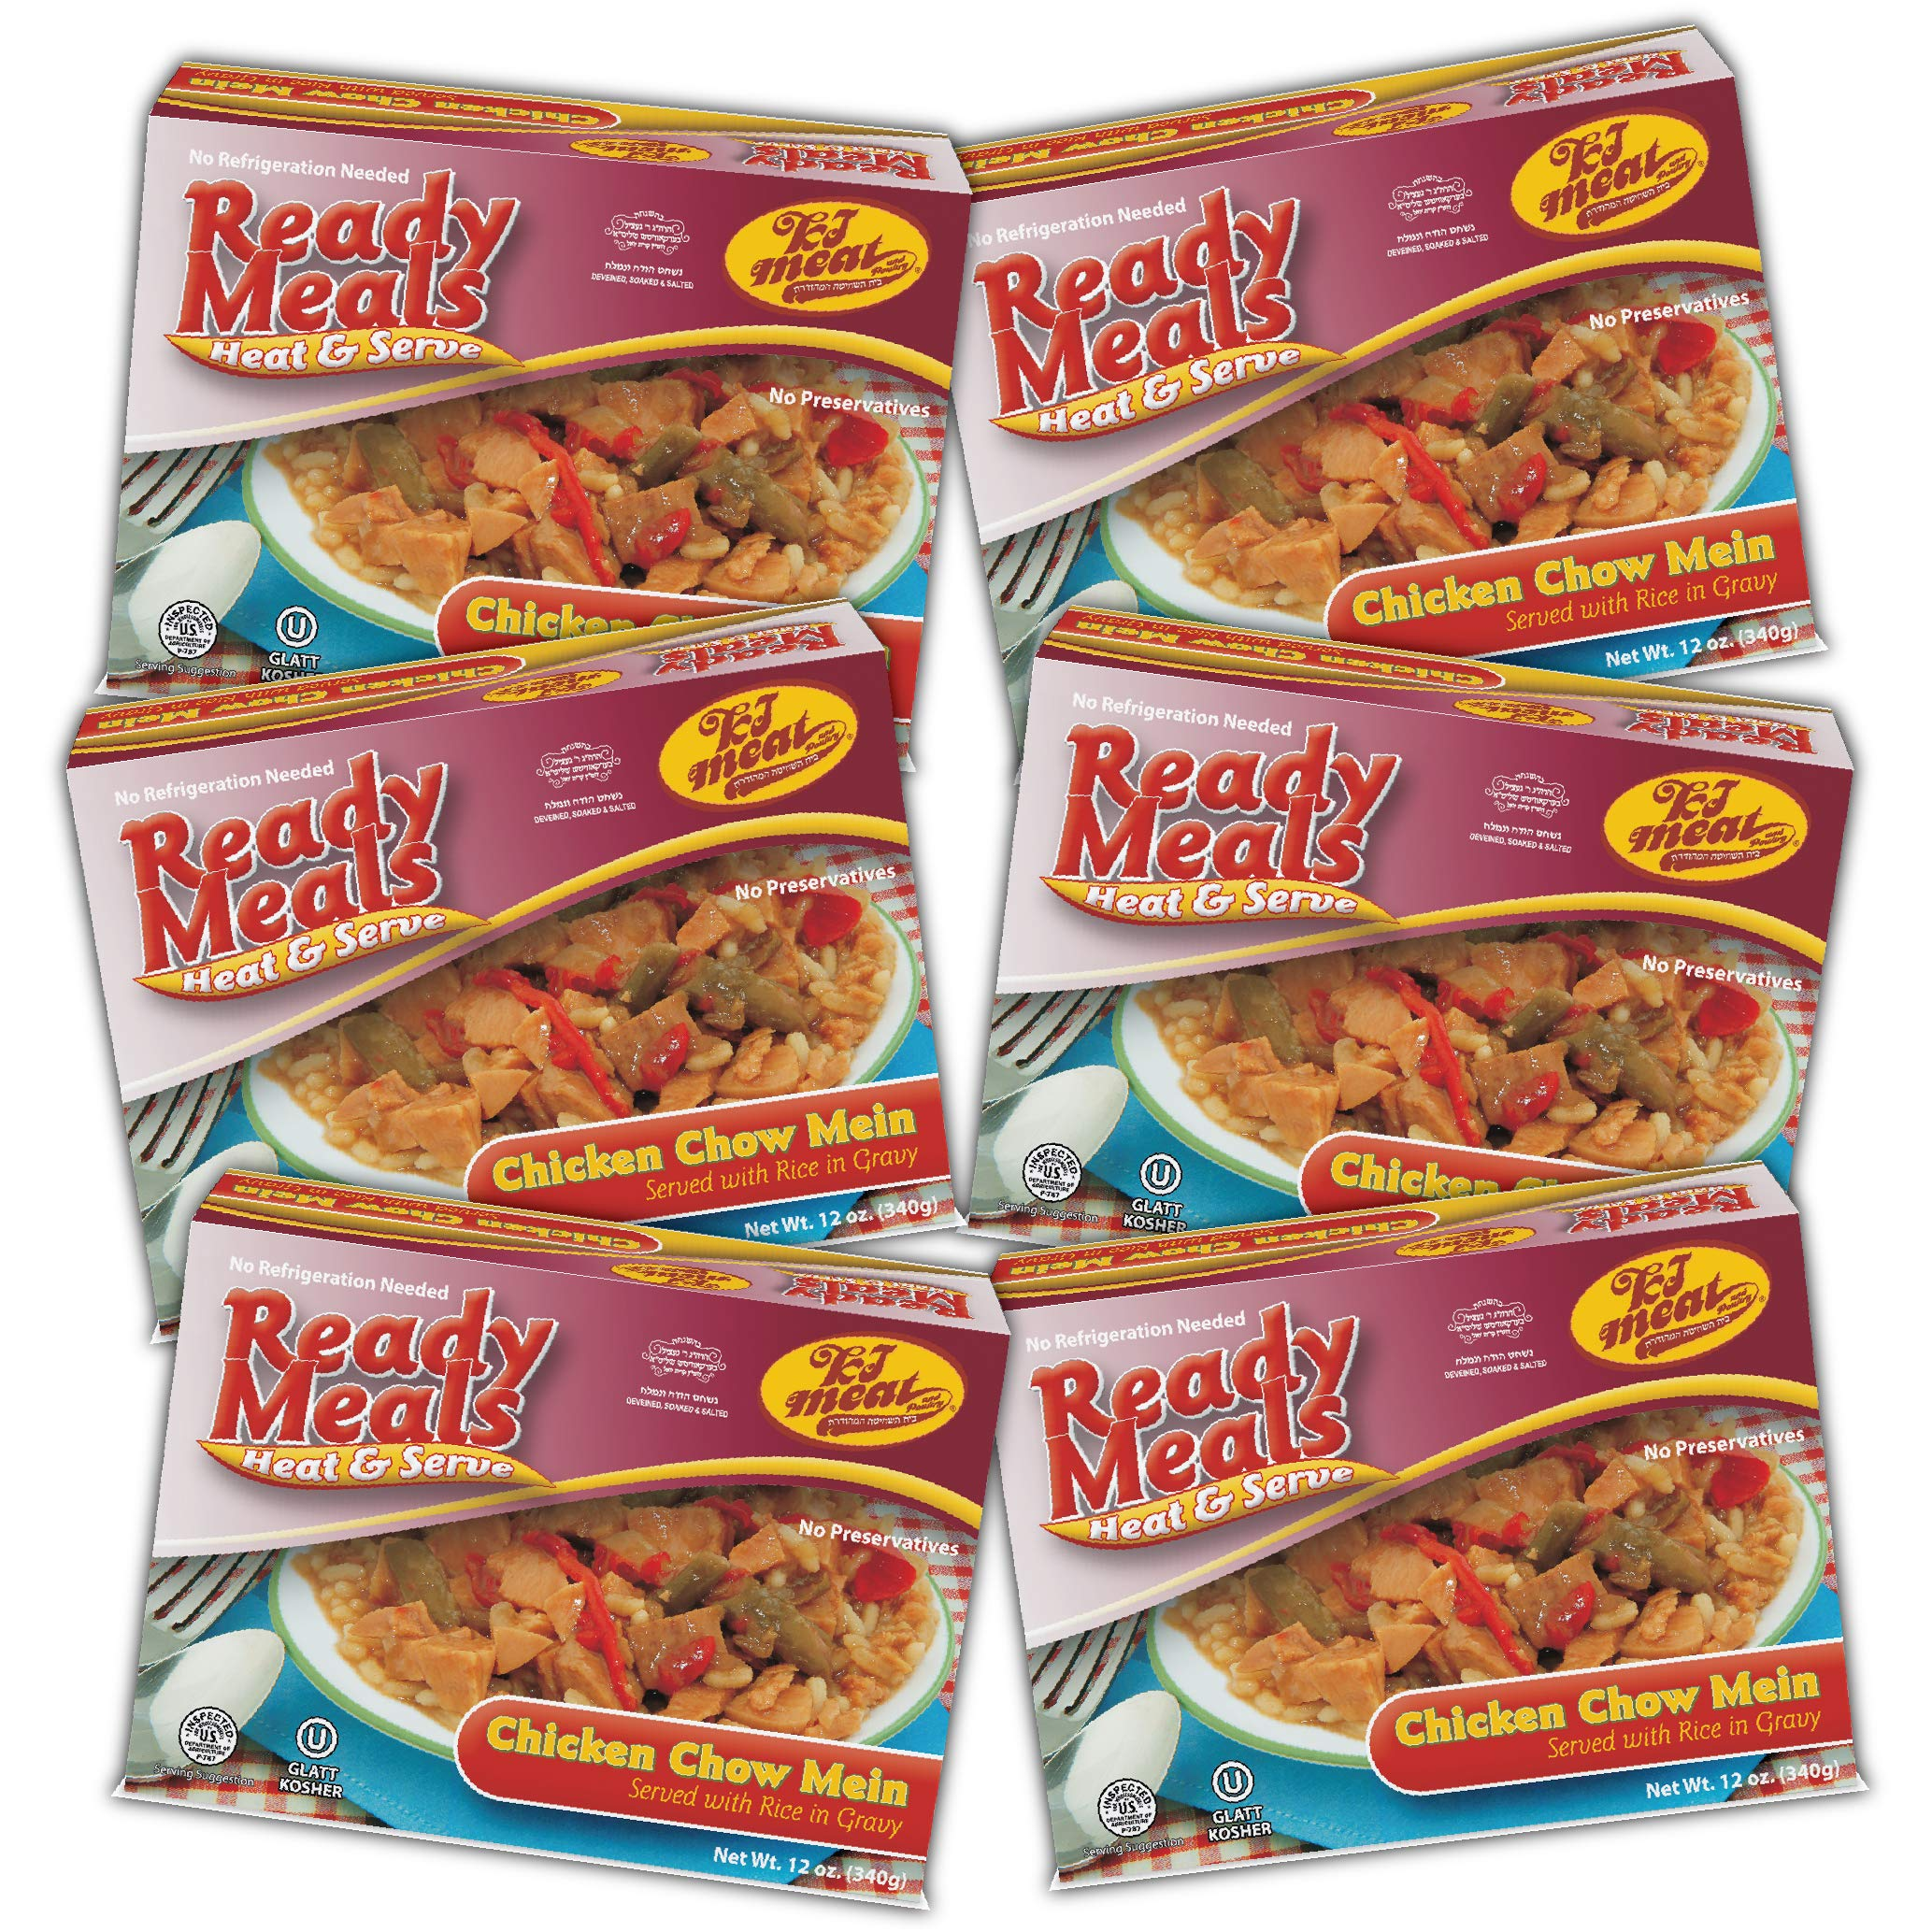 Kosher Meals Ready to Eat, Kosher Chicken Chow Mein Served with Rice in Gravy (Microwavable, Shelf Stable) - Gluten Free, Dairy Free, Egg Free - Glatt Kosher (12 ounce - Pack of 6) by KJ Poultry